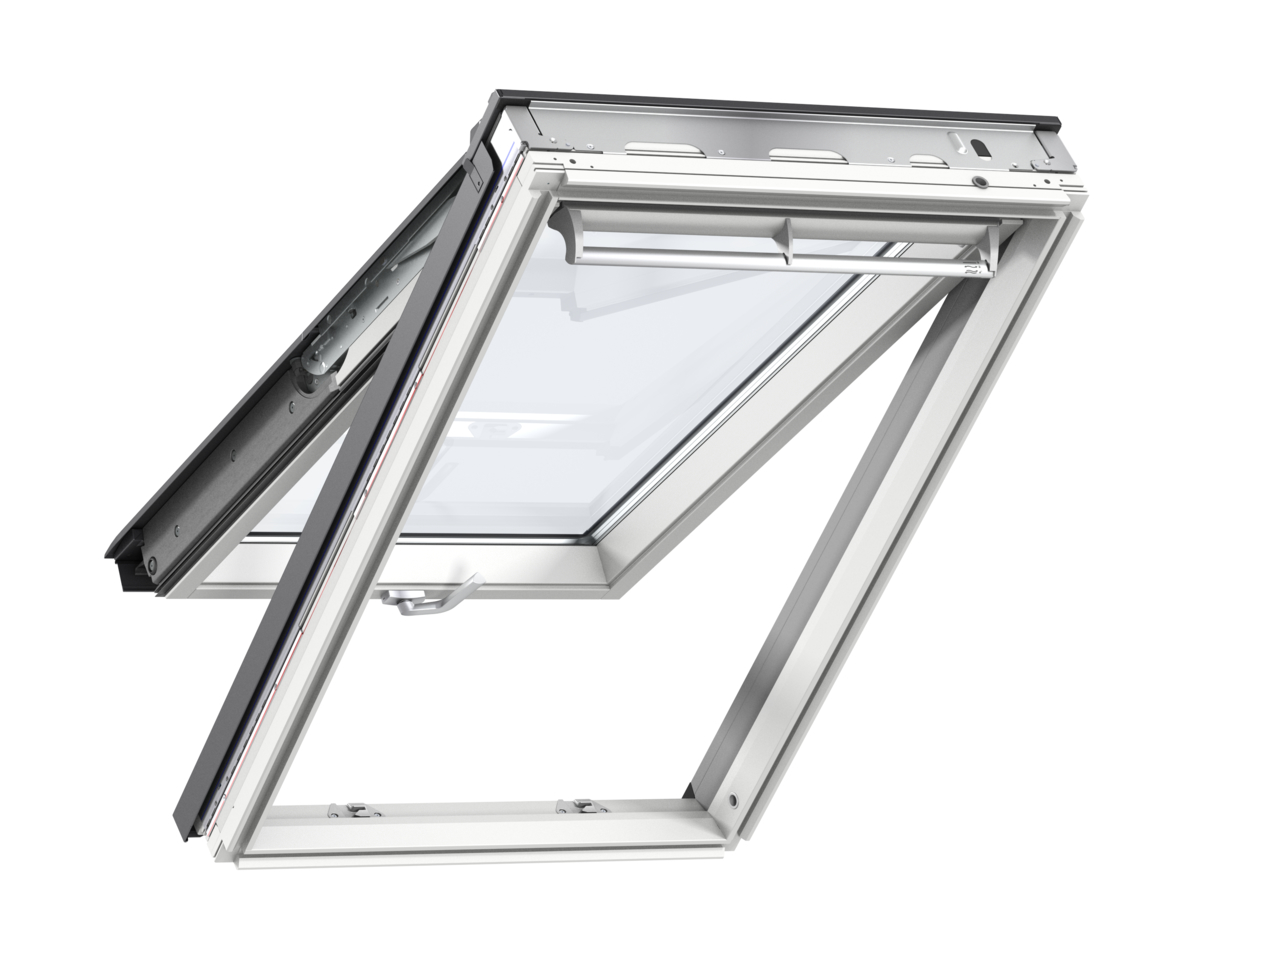 Velux GPL MK04 780 x 980mm Top Hung 66Pane Roof Window - White Painted